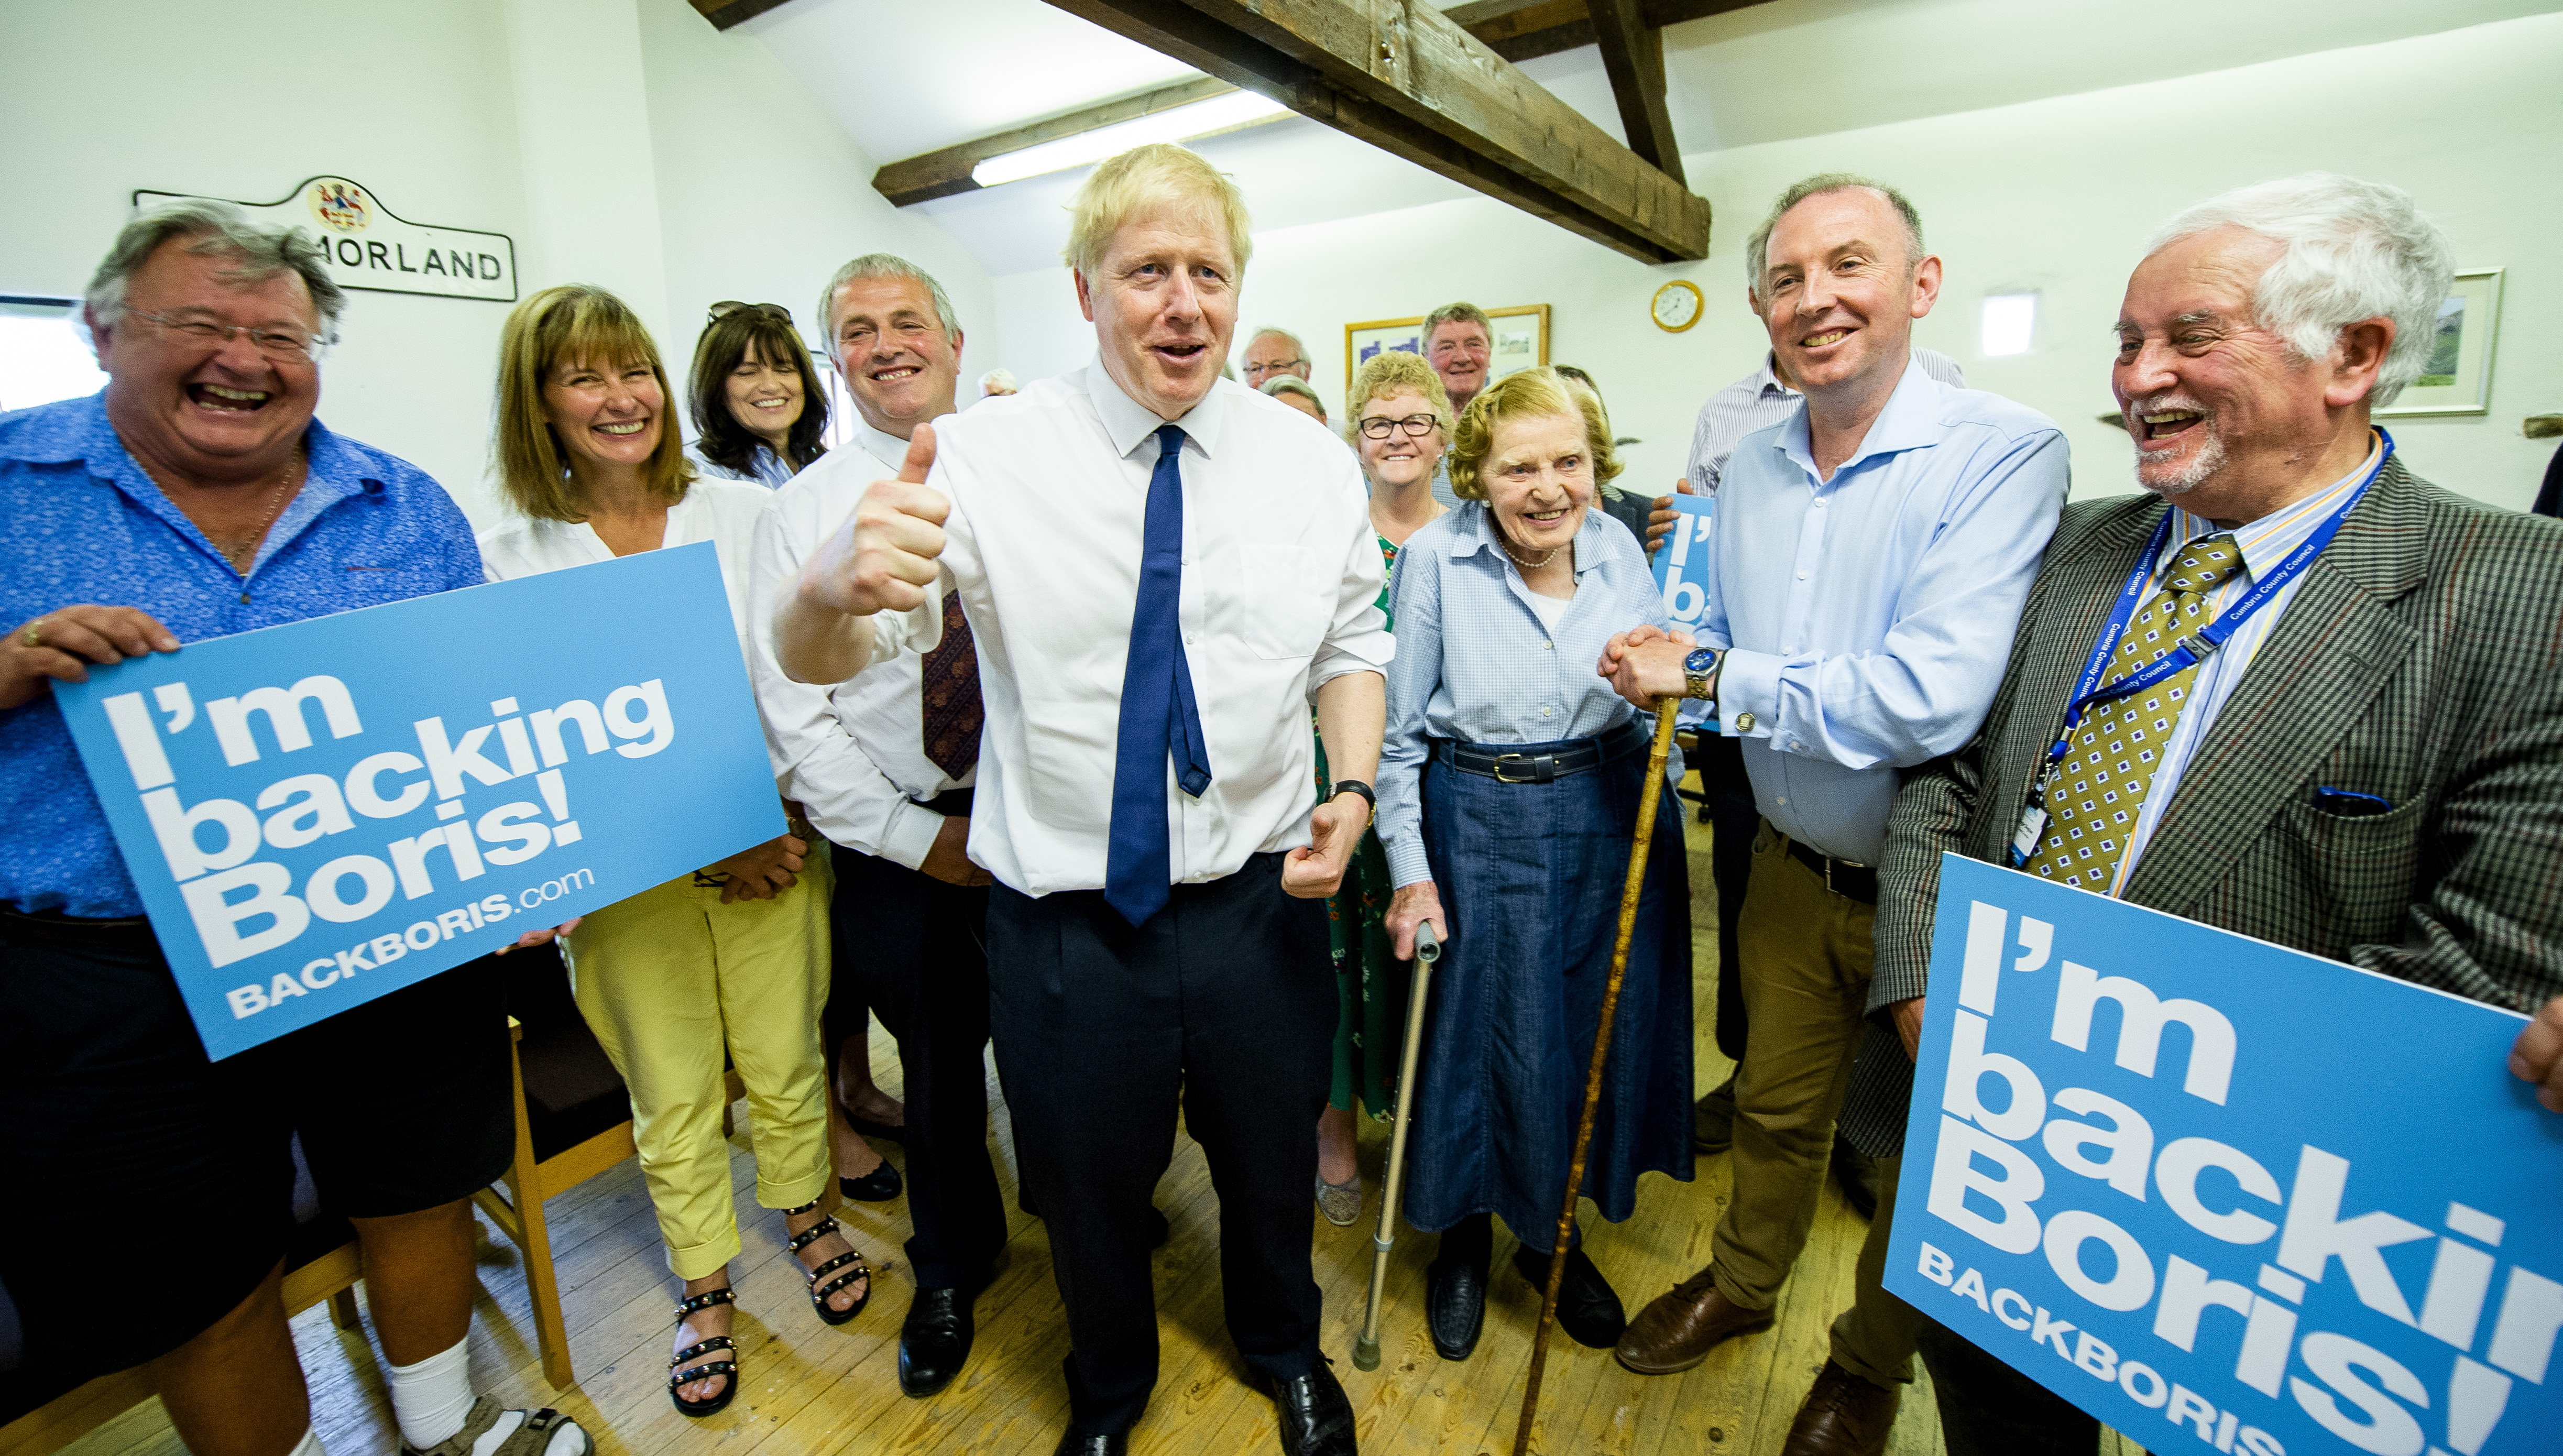 Conservative party leadership contender Boris Johnson with a supporter at a Tory leadership hustings in Crooklands in Cumbria.